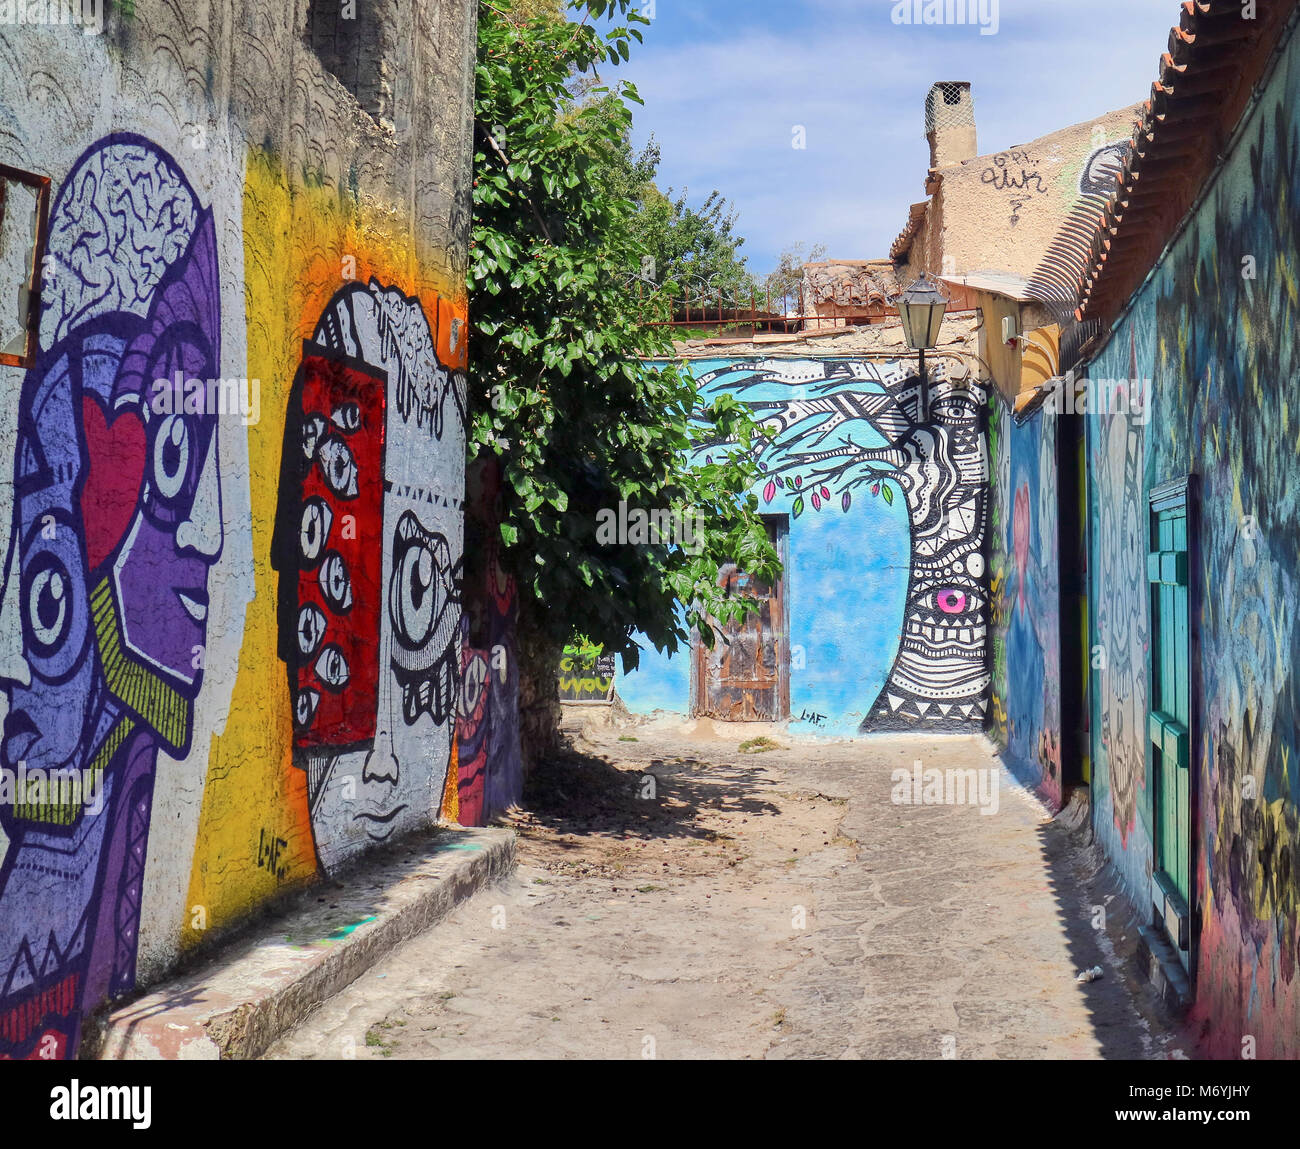 Europe, Greece, Attica Athens,Anafiotika Plaka  ,Graffiti On Wall At Street The part of old town of Athens called - Stock Image